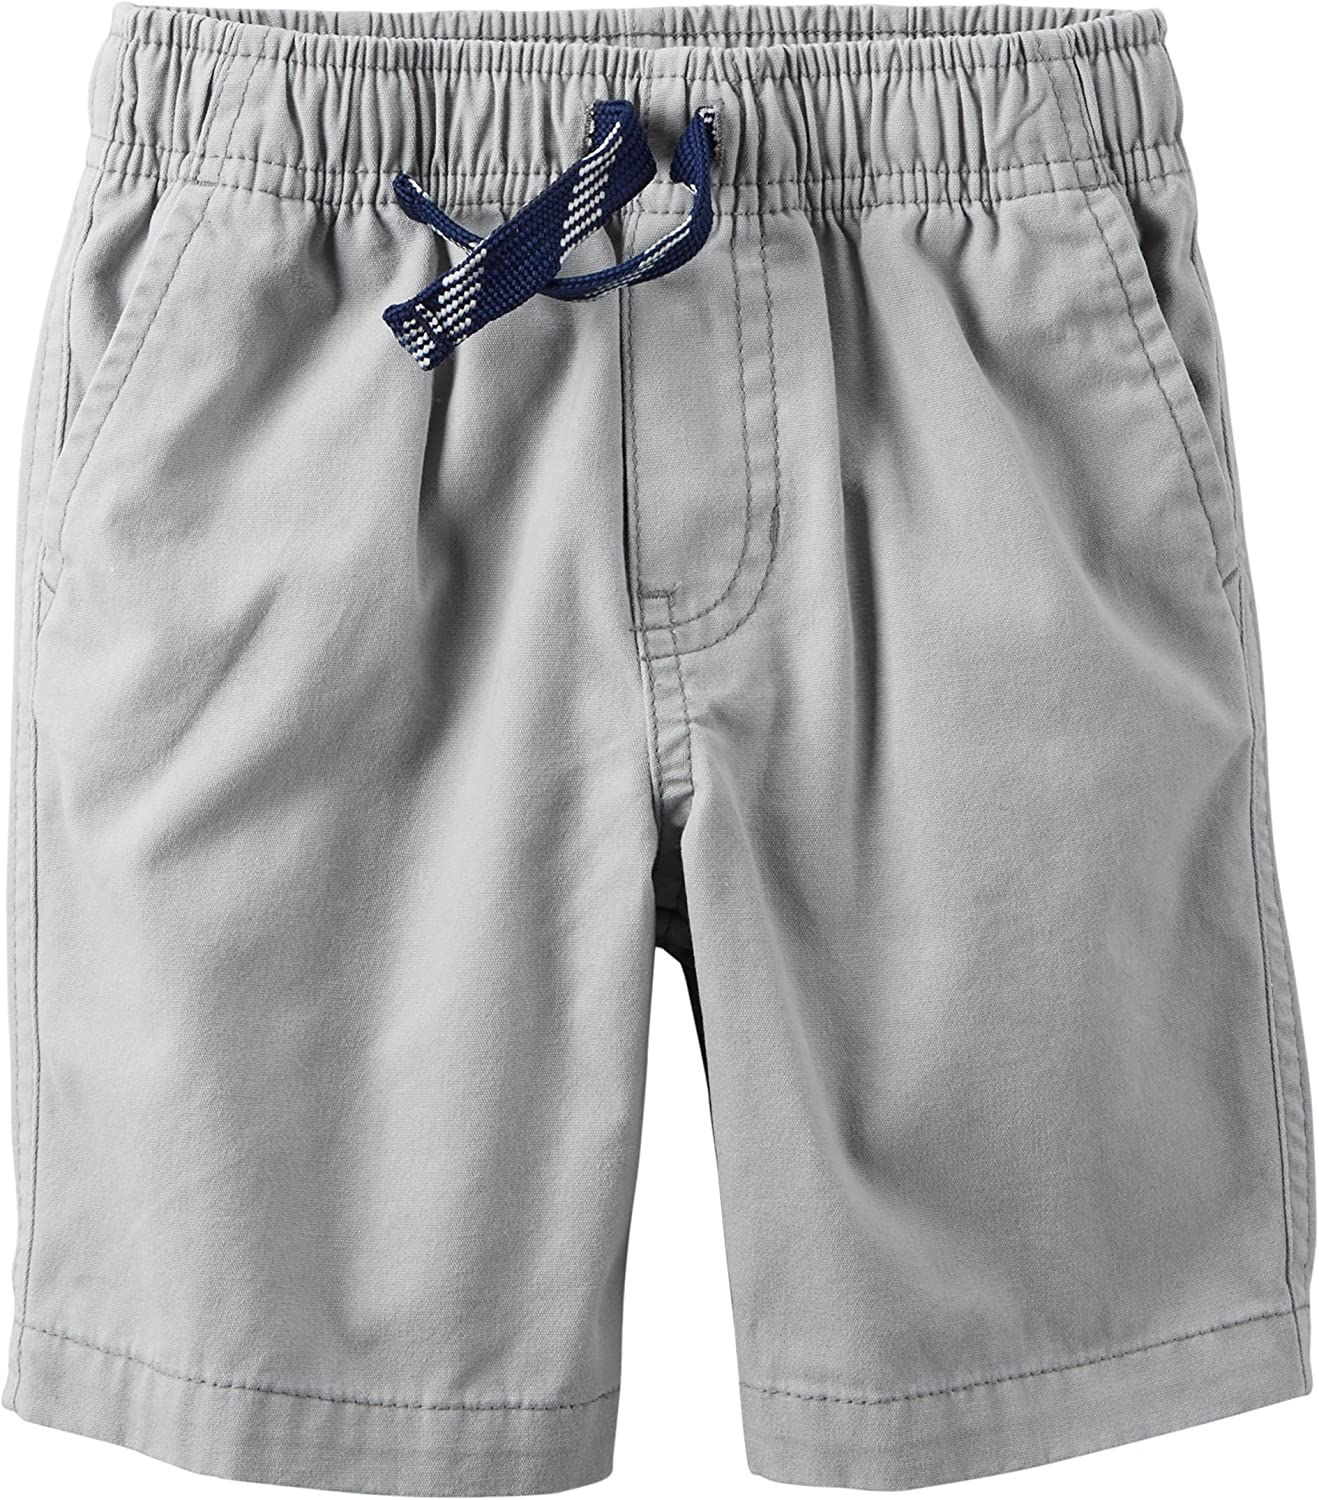 Size - 9 Months Carters Baby Boys Gray Pull-On Tie Front Shorts